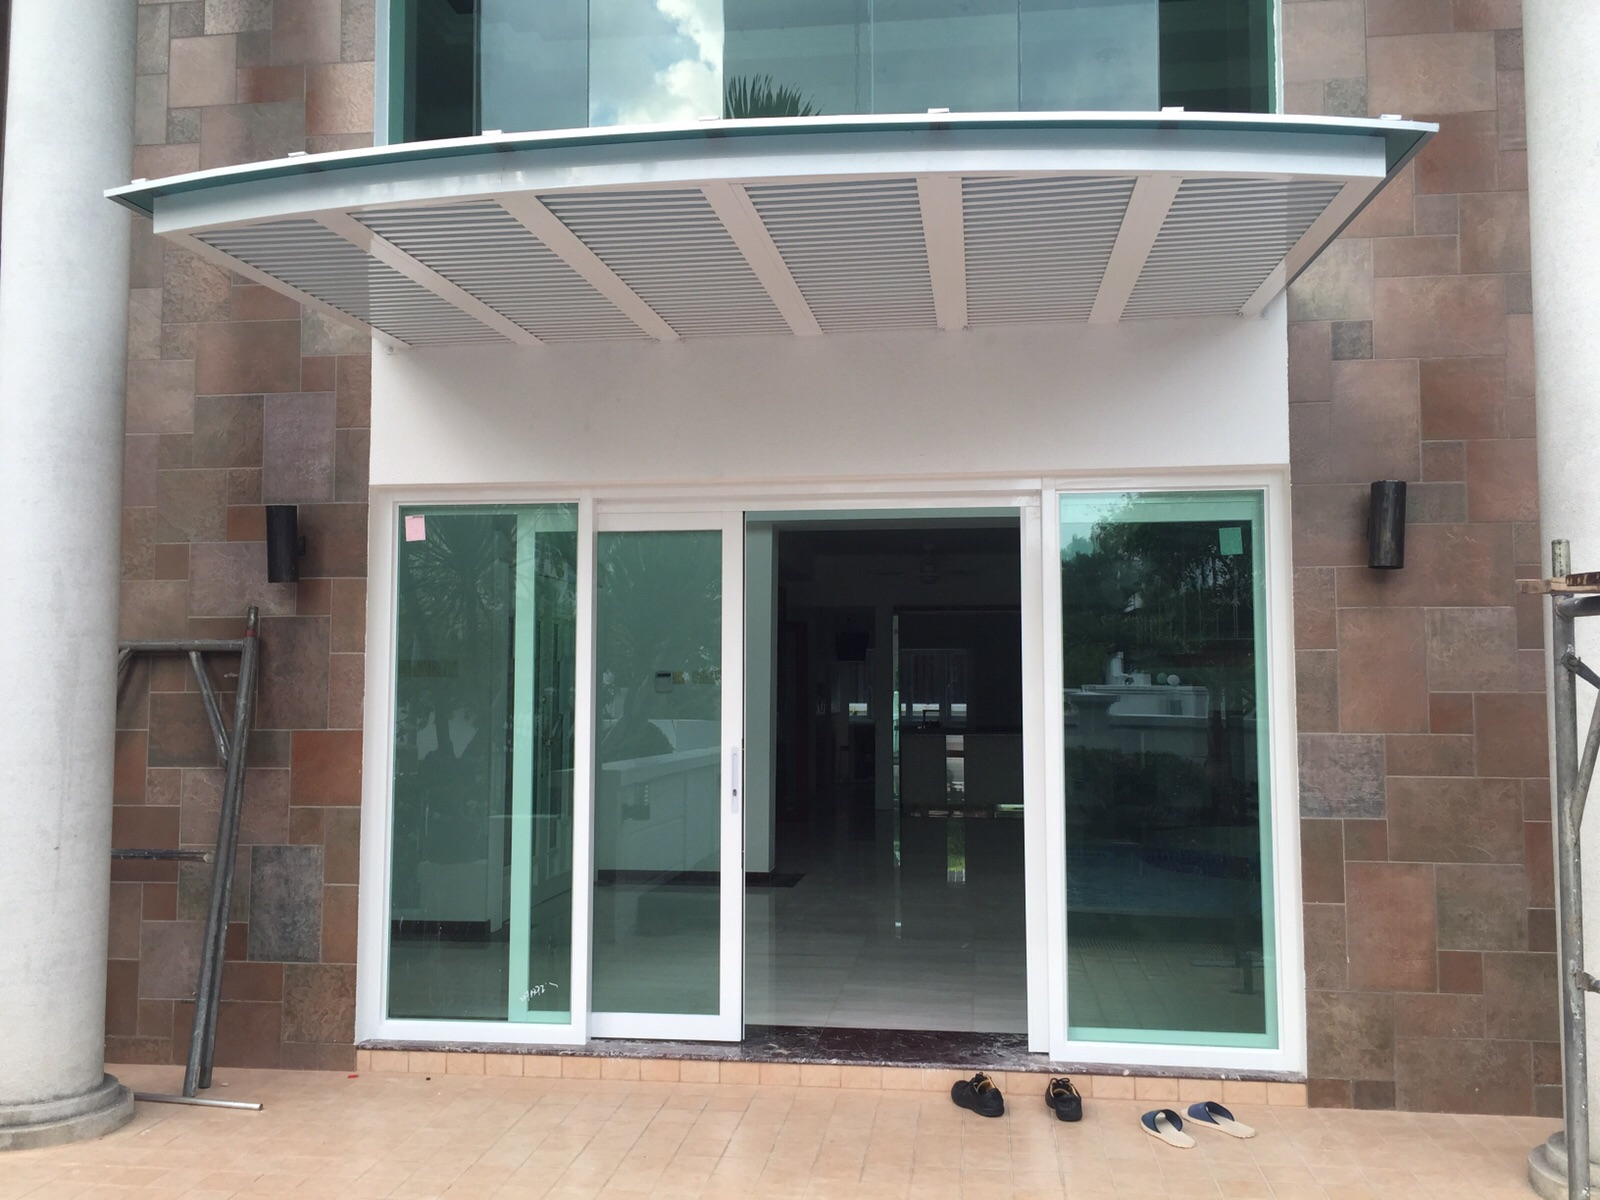 Arch Shape Aluminium Polycarbonate Canopy with Aluminium Trellis and Glass Doors & Arch Shape Aluminium Polycarbonate Canopy with Aluminium Trellis ... Pezcame.Com